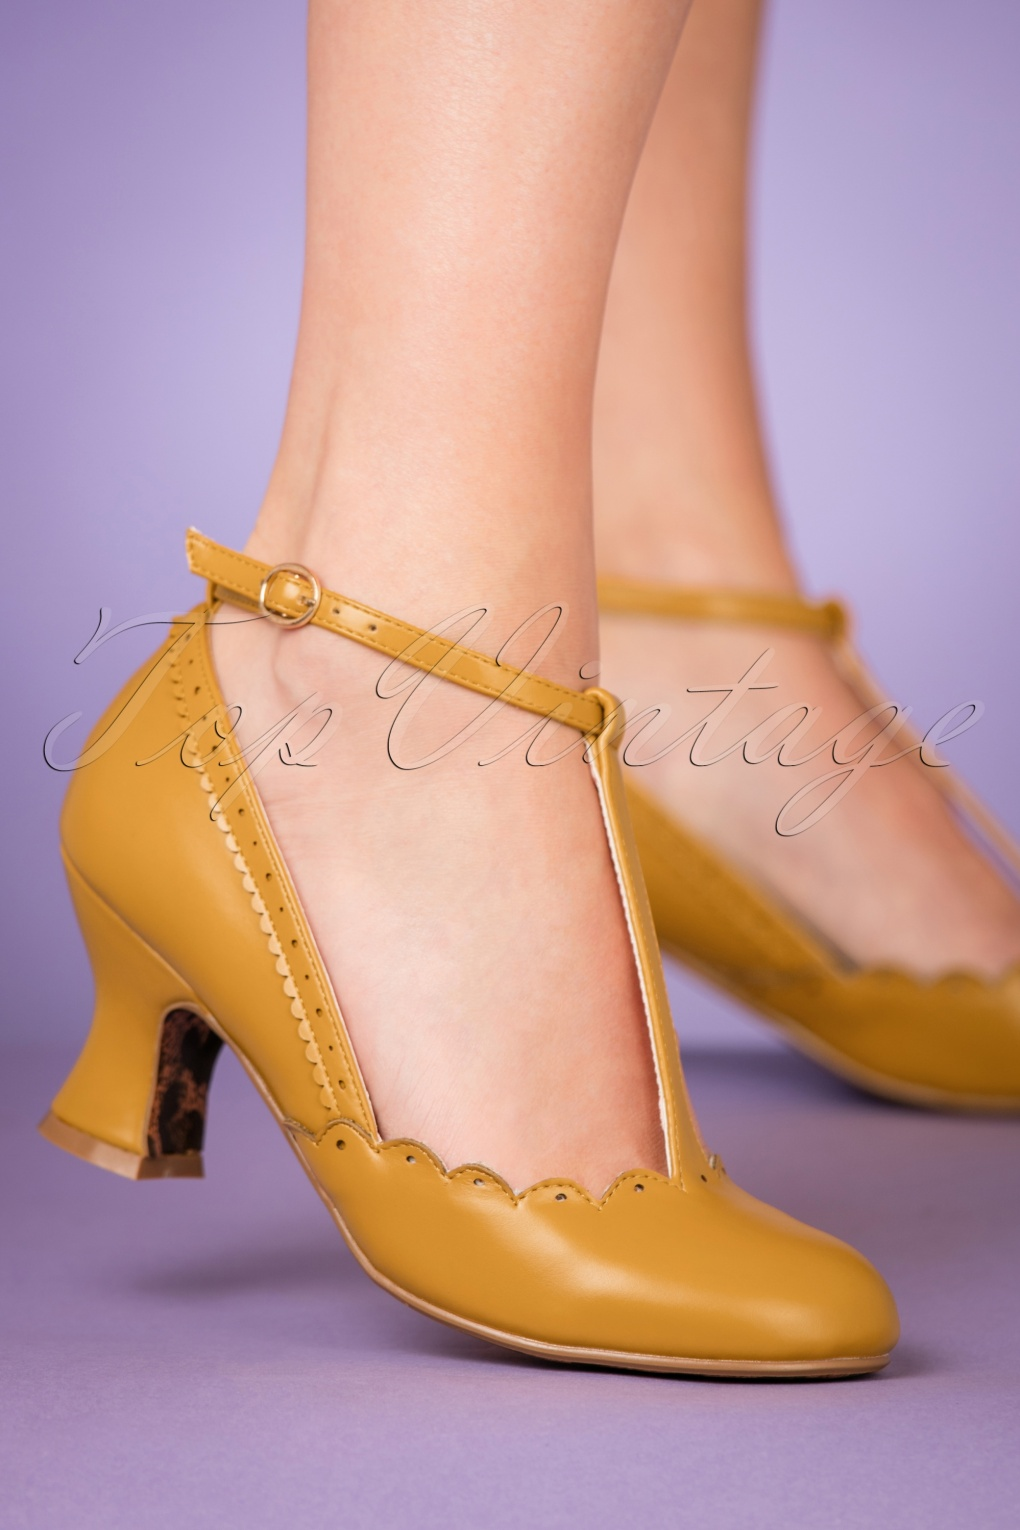 Authentic Natural 1950s Makeup History and Tutorial 50s Penny T-Strap Pumps in Mustard Yellow £59.15 AT vintagedancer.com